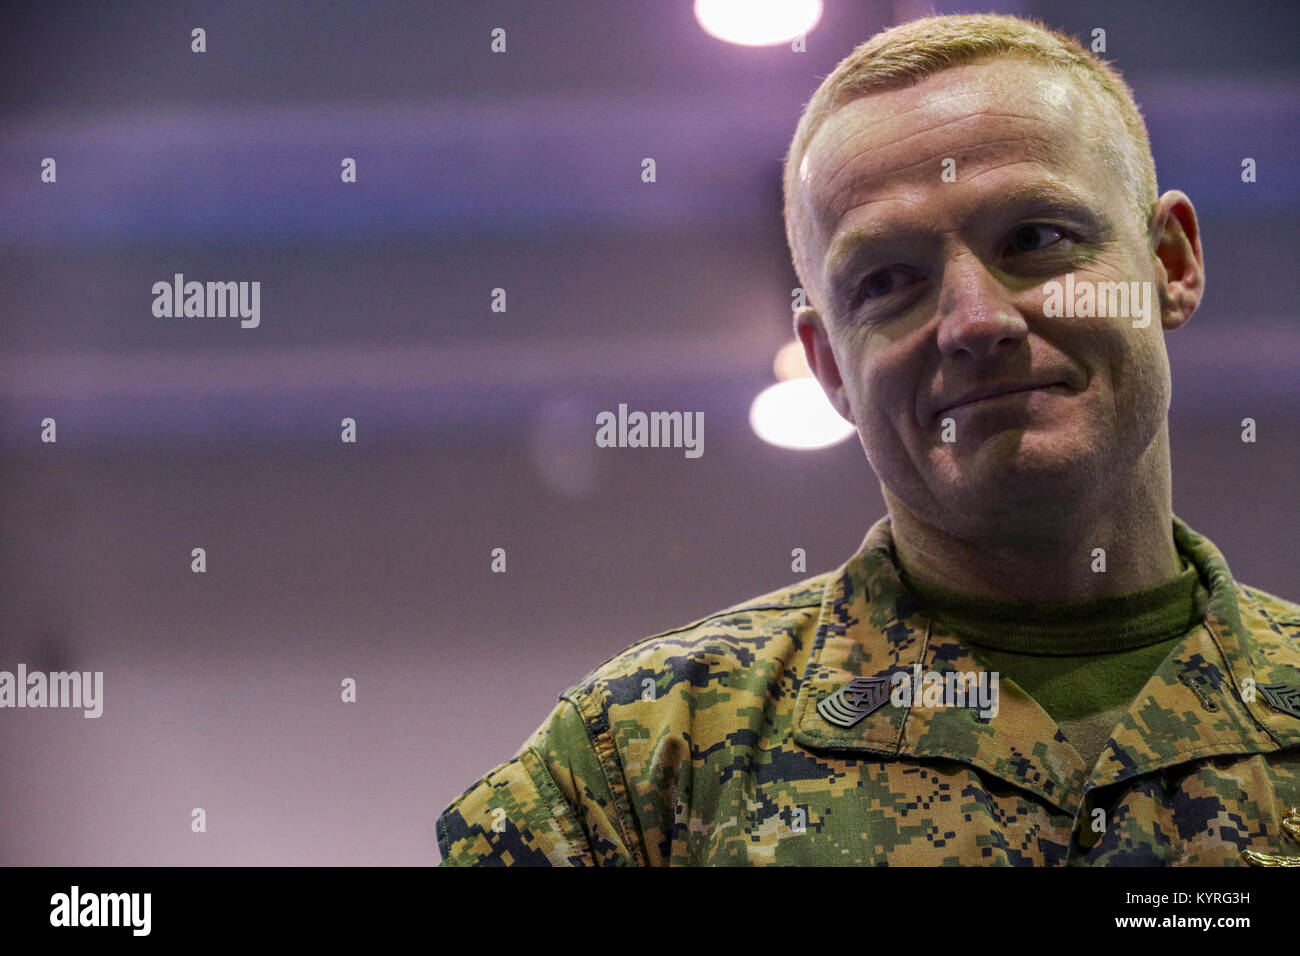 U.S. Marine Corps Sgt. Maj. Joshua J. Smith smiles during a Relief and Appointment ceremony on Marine Corps Air - Stock Image